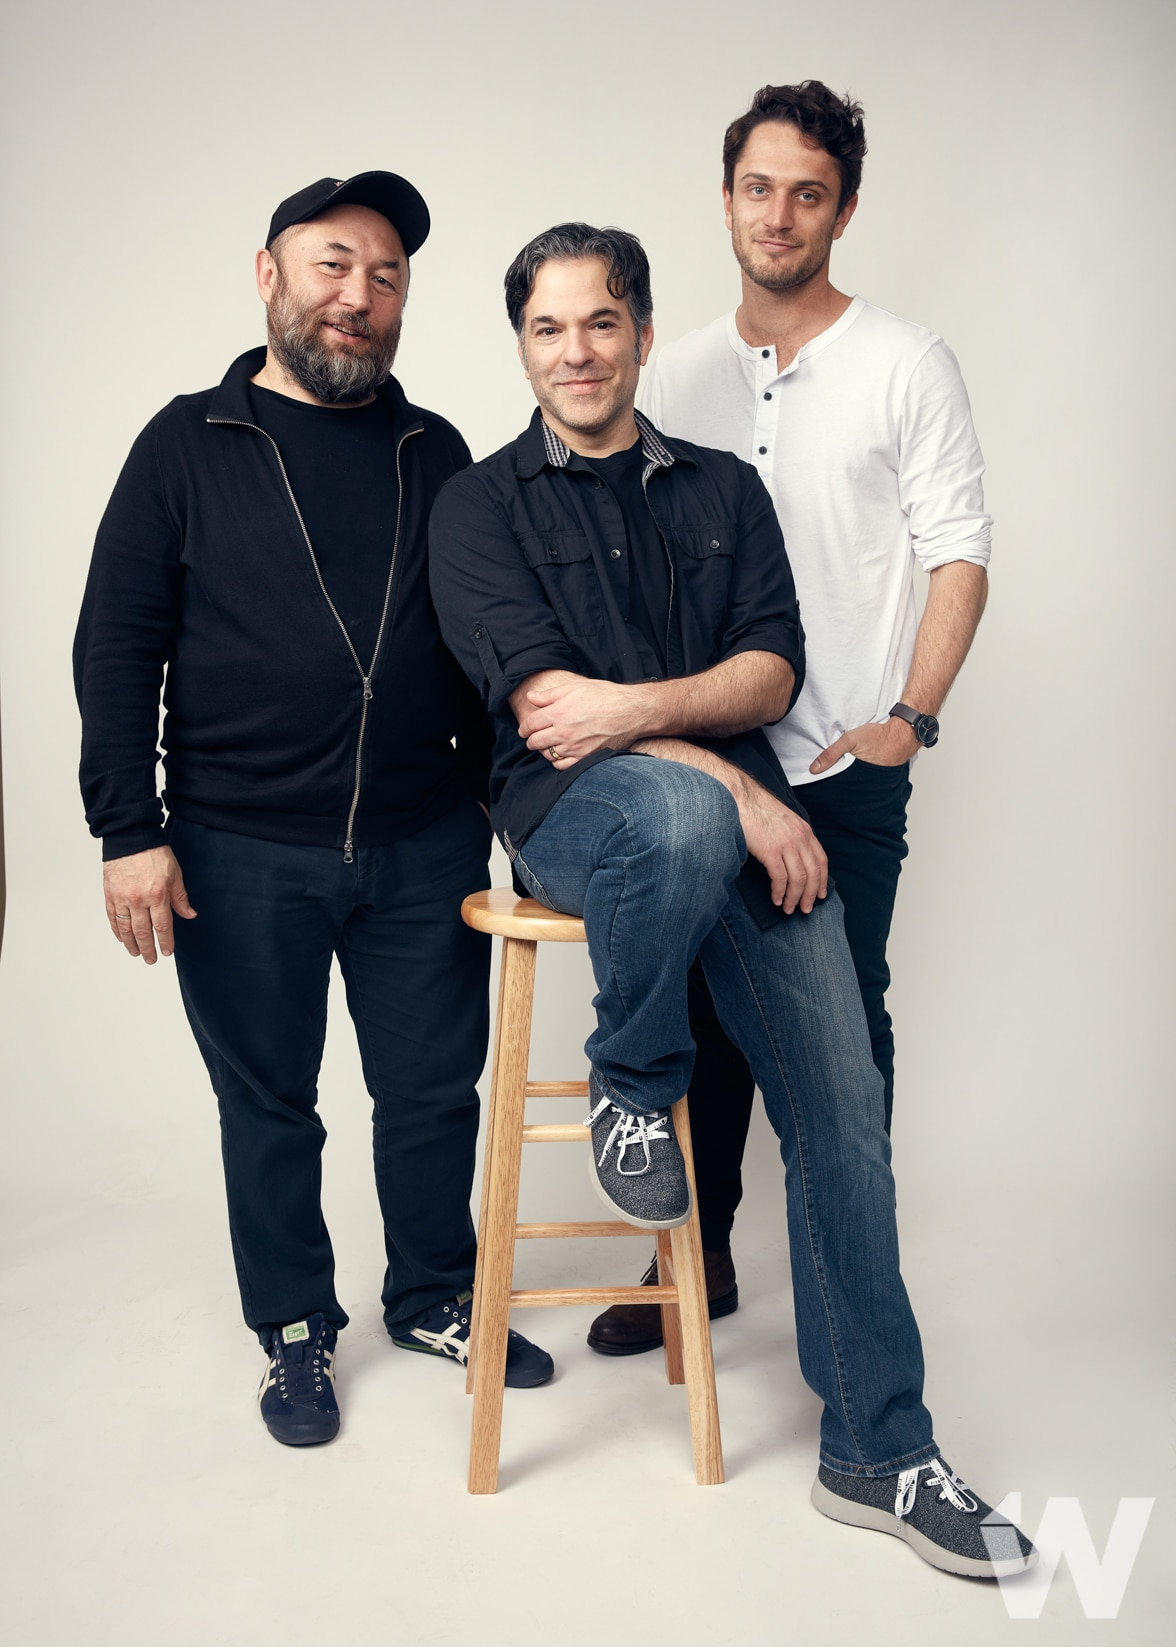 SXSW 2018 Untitled Blumhouse Film Timur Bekmambetov, Stephen Susco and Colin Woodell